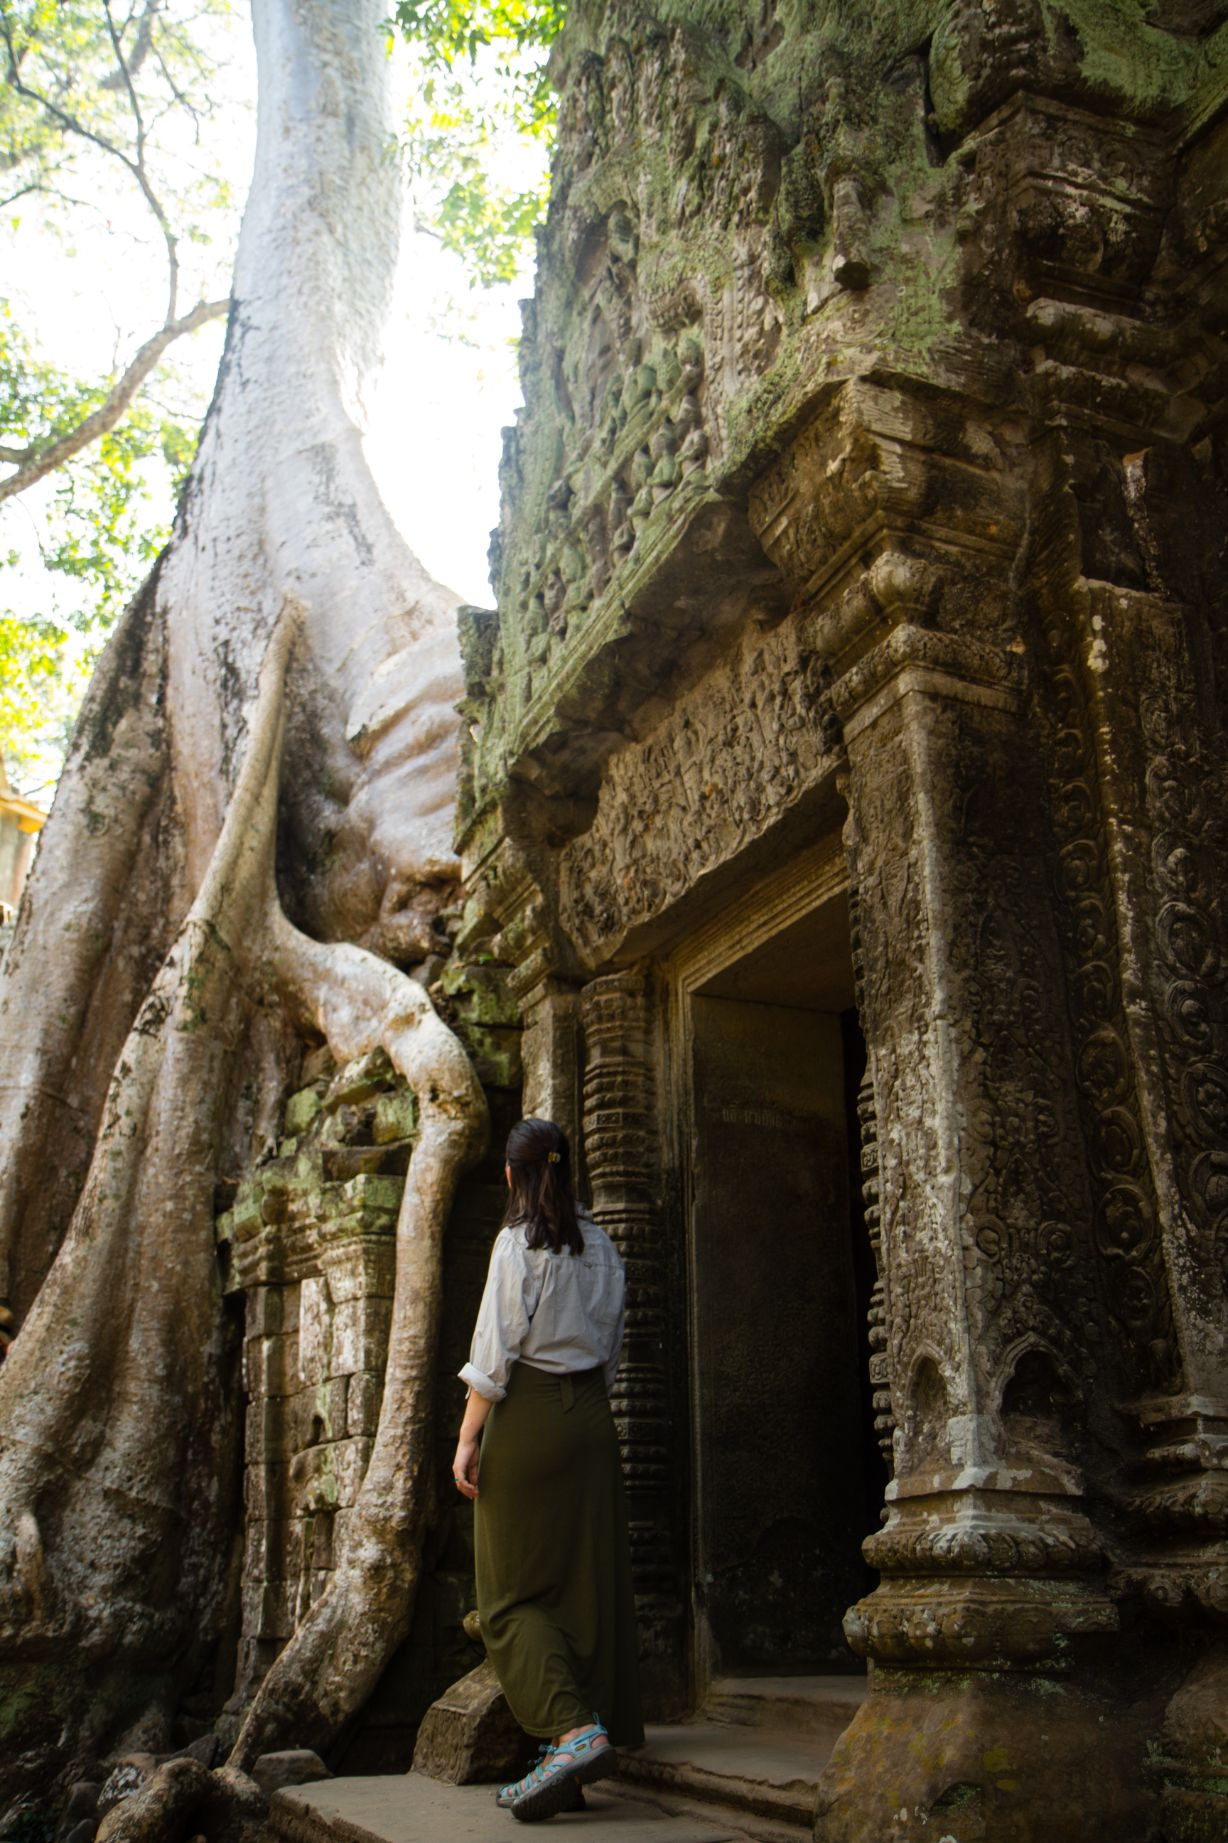 ruins and giant tree in Cambodia